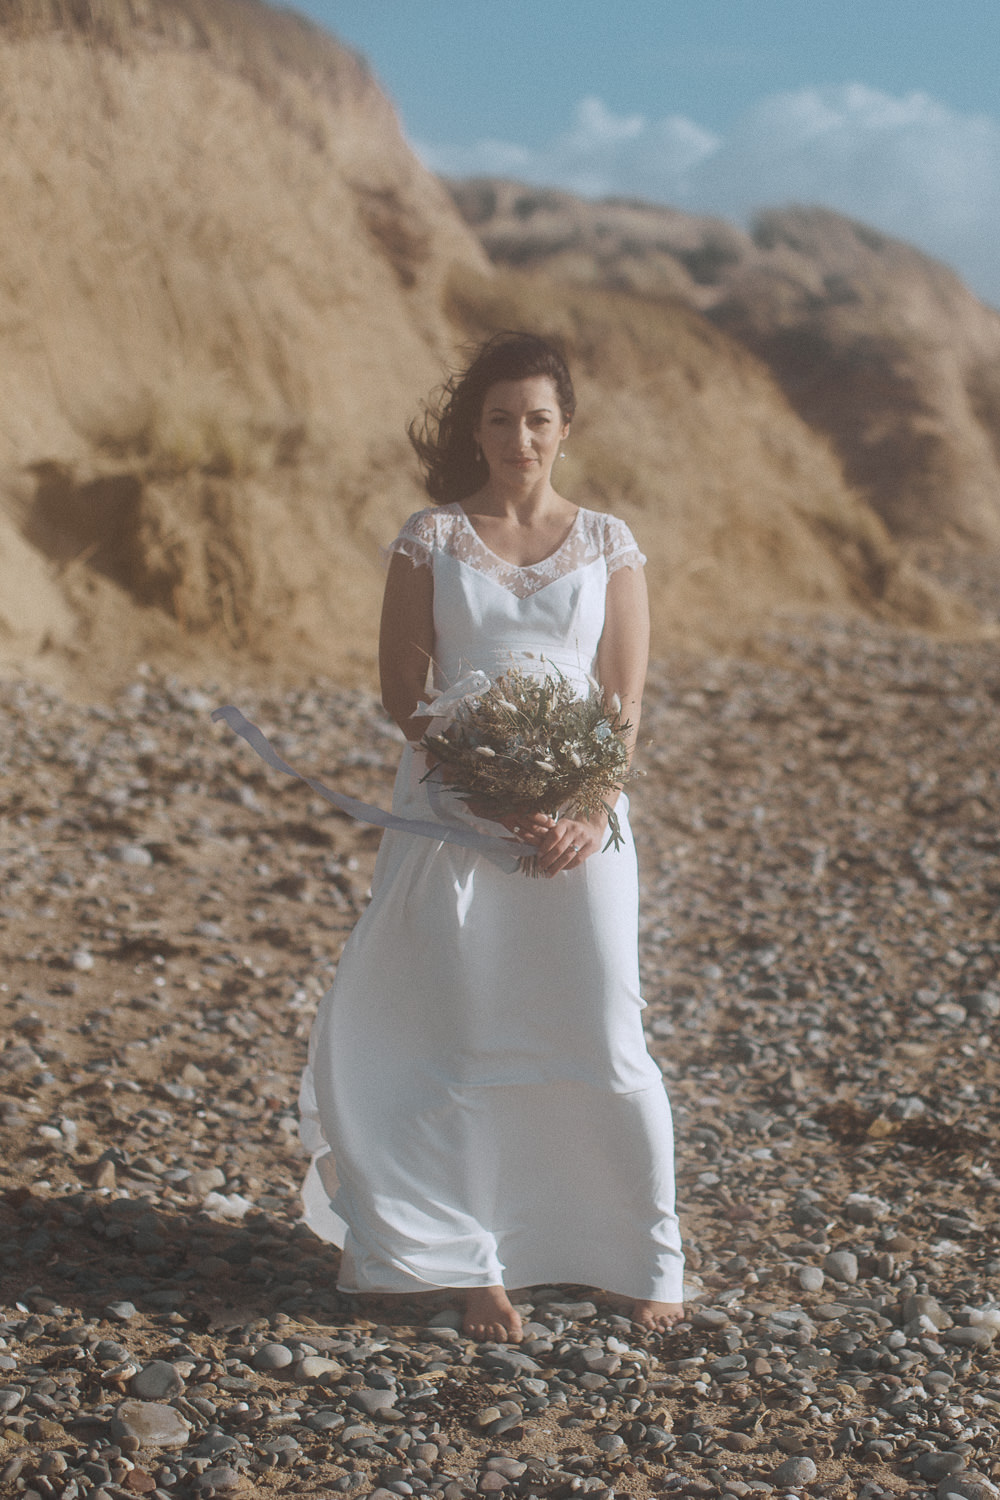 Bride and her dried flower bouquet Newborough Beach, Anglesey, Wales